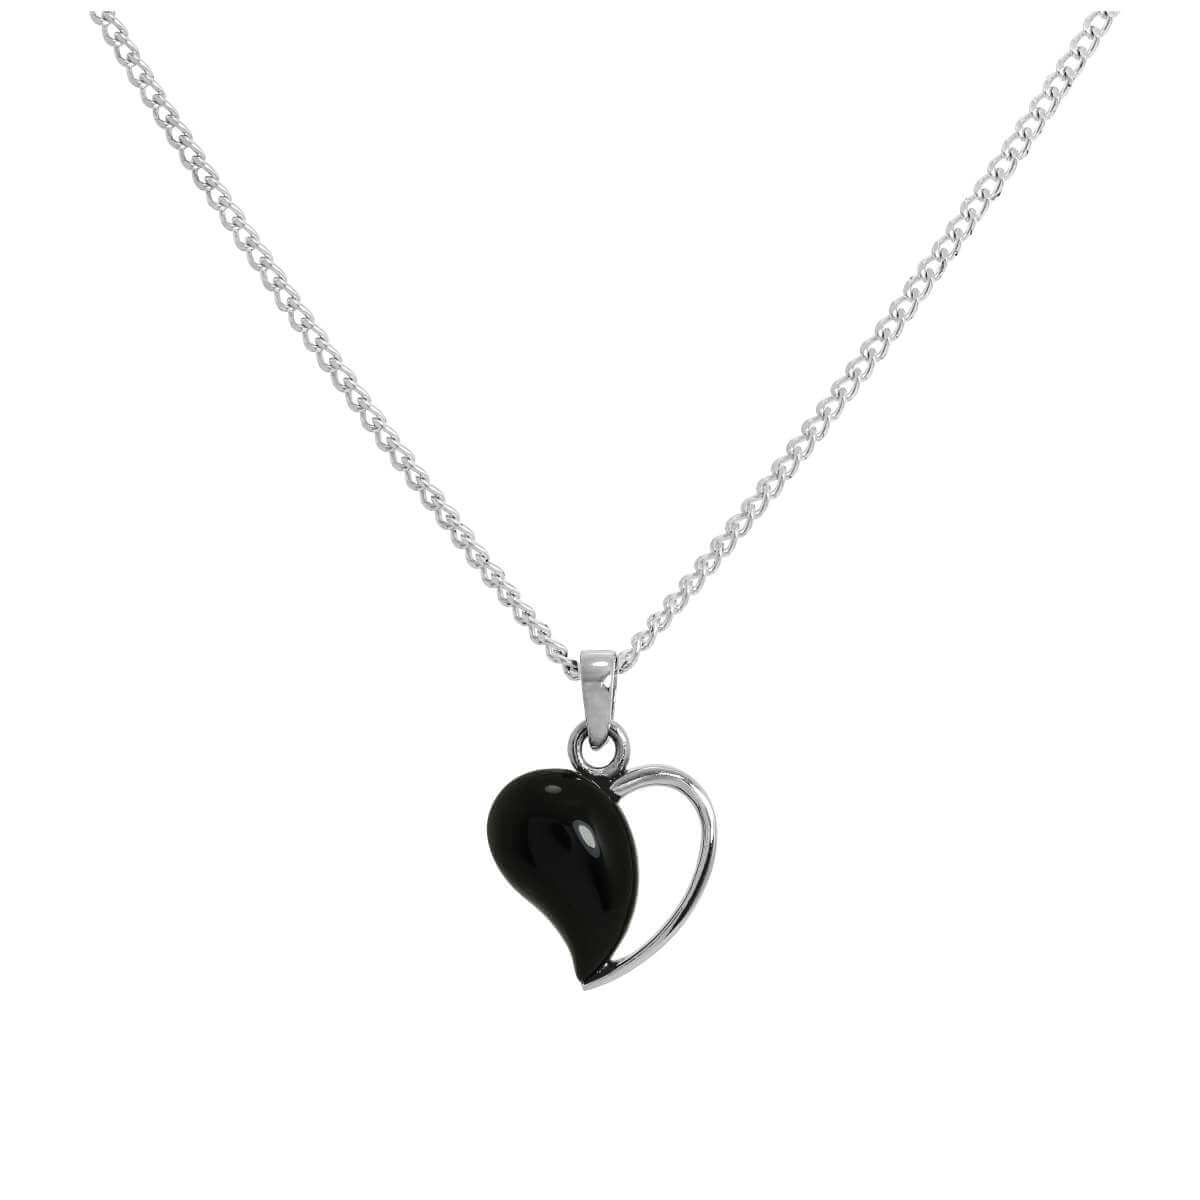 Sterling Silver & Onyx Open Heart Pendant Necklace 16 - 24 Inches